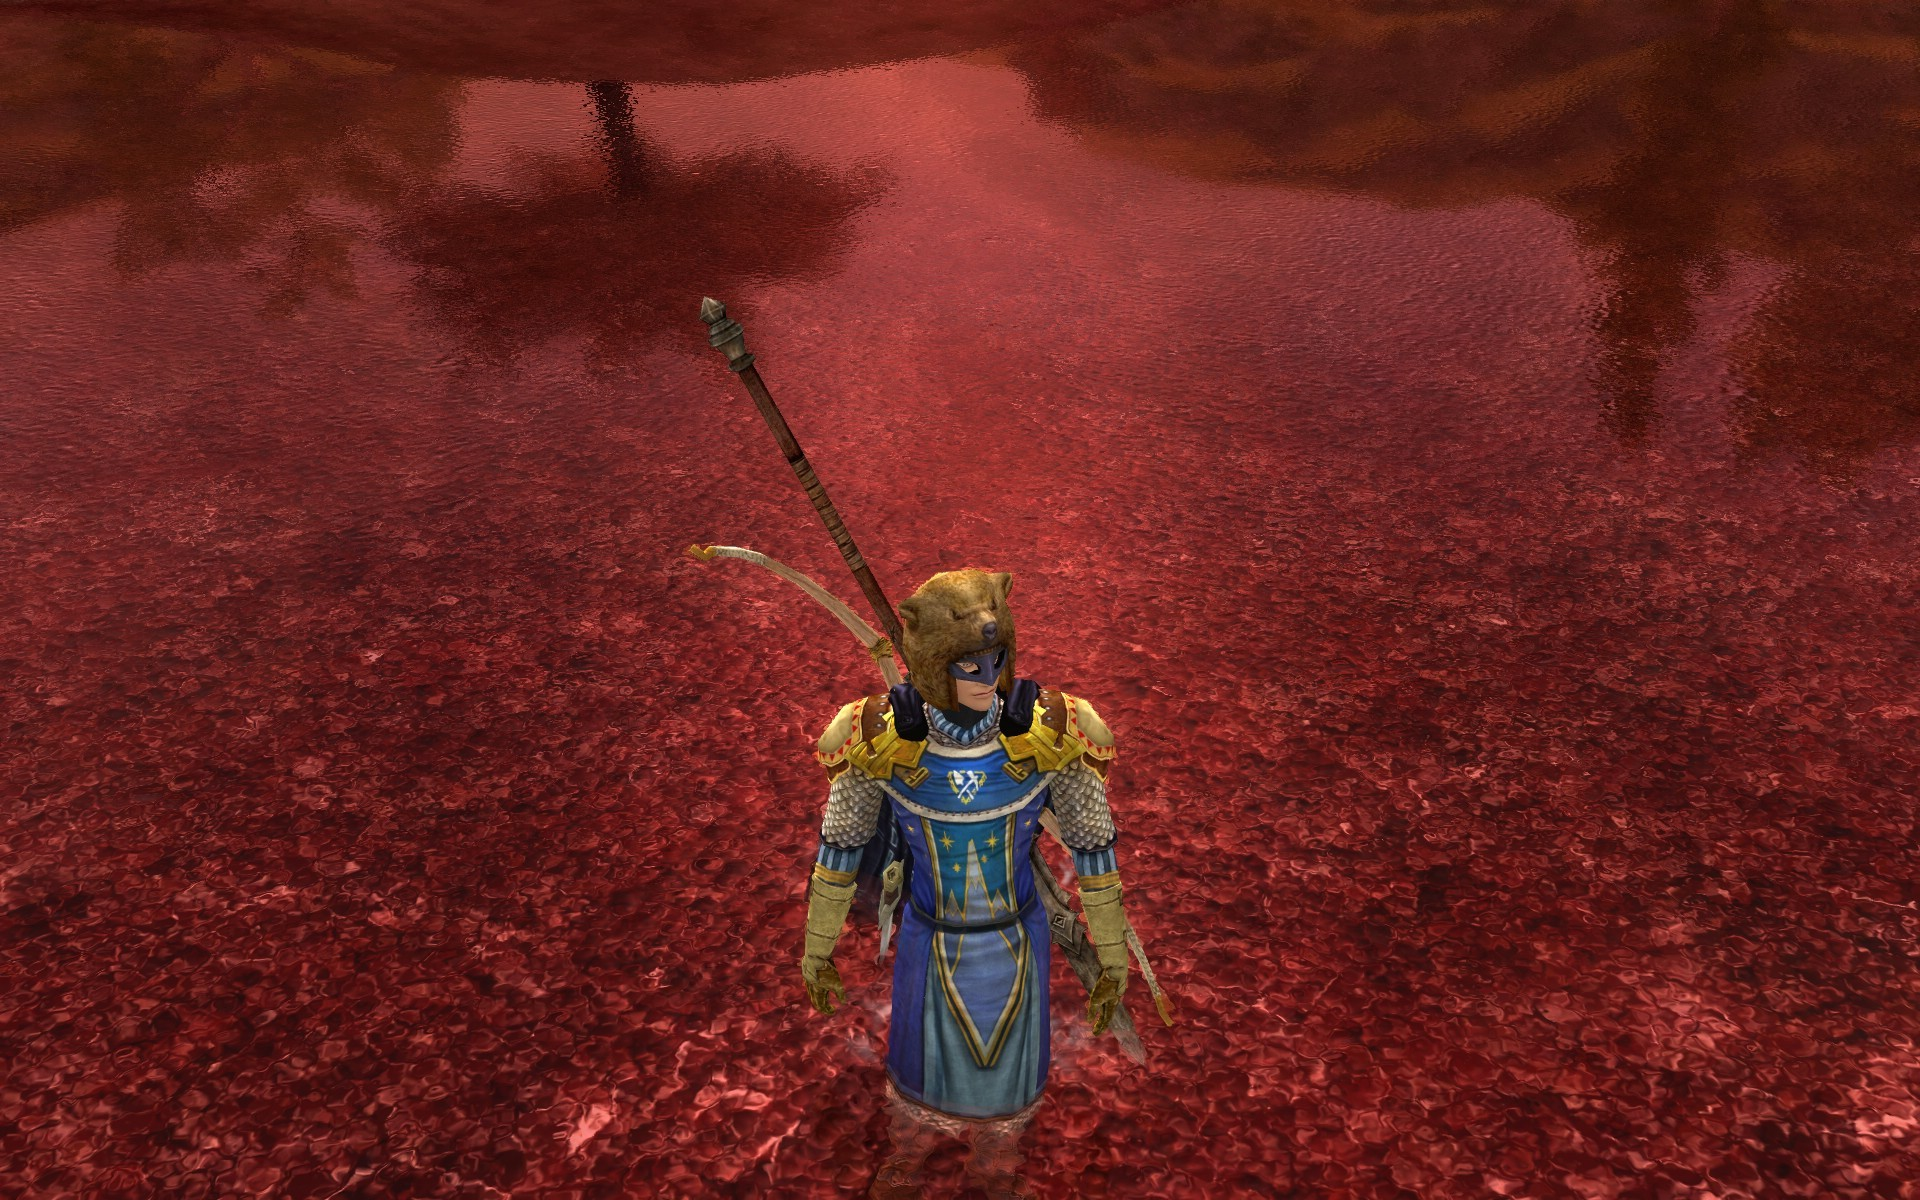 Lord of the Rings Online - who knew blood was reflective?